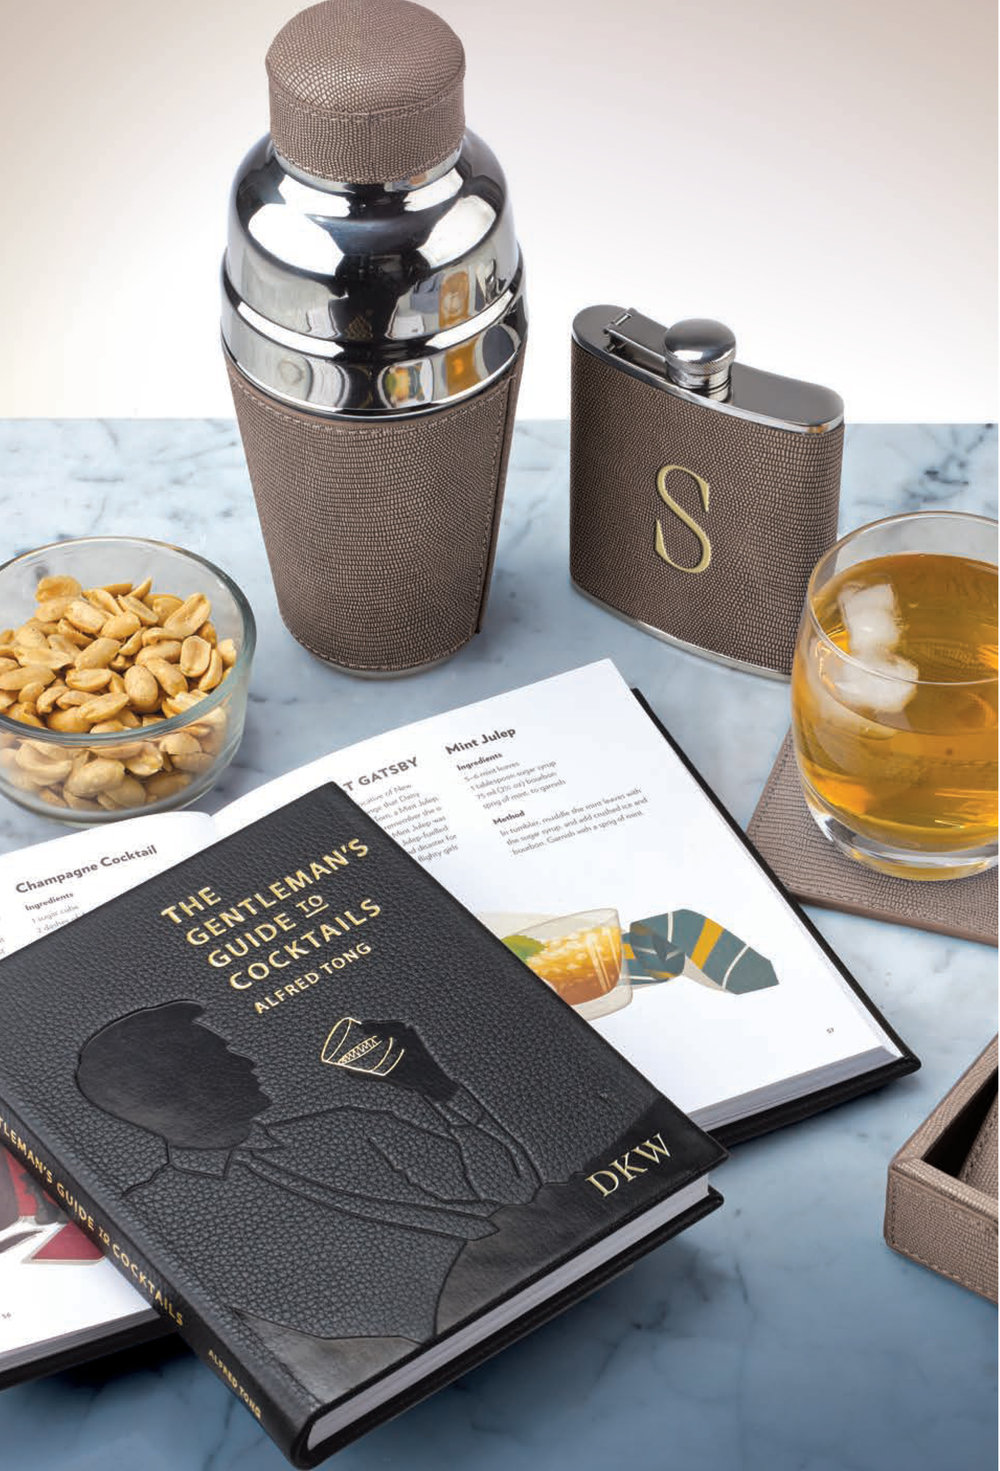 """THE GENTLEMAN'S GUIDE TO COCKTAILS,"" COCKTAIL SHAKER, FLASK & COASTERS."